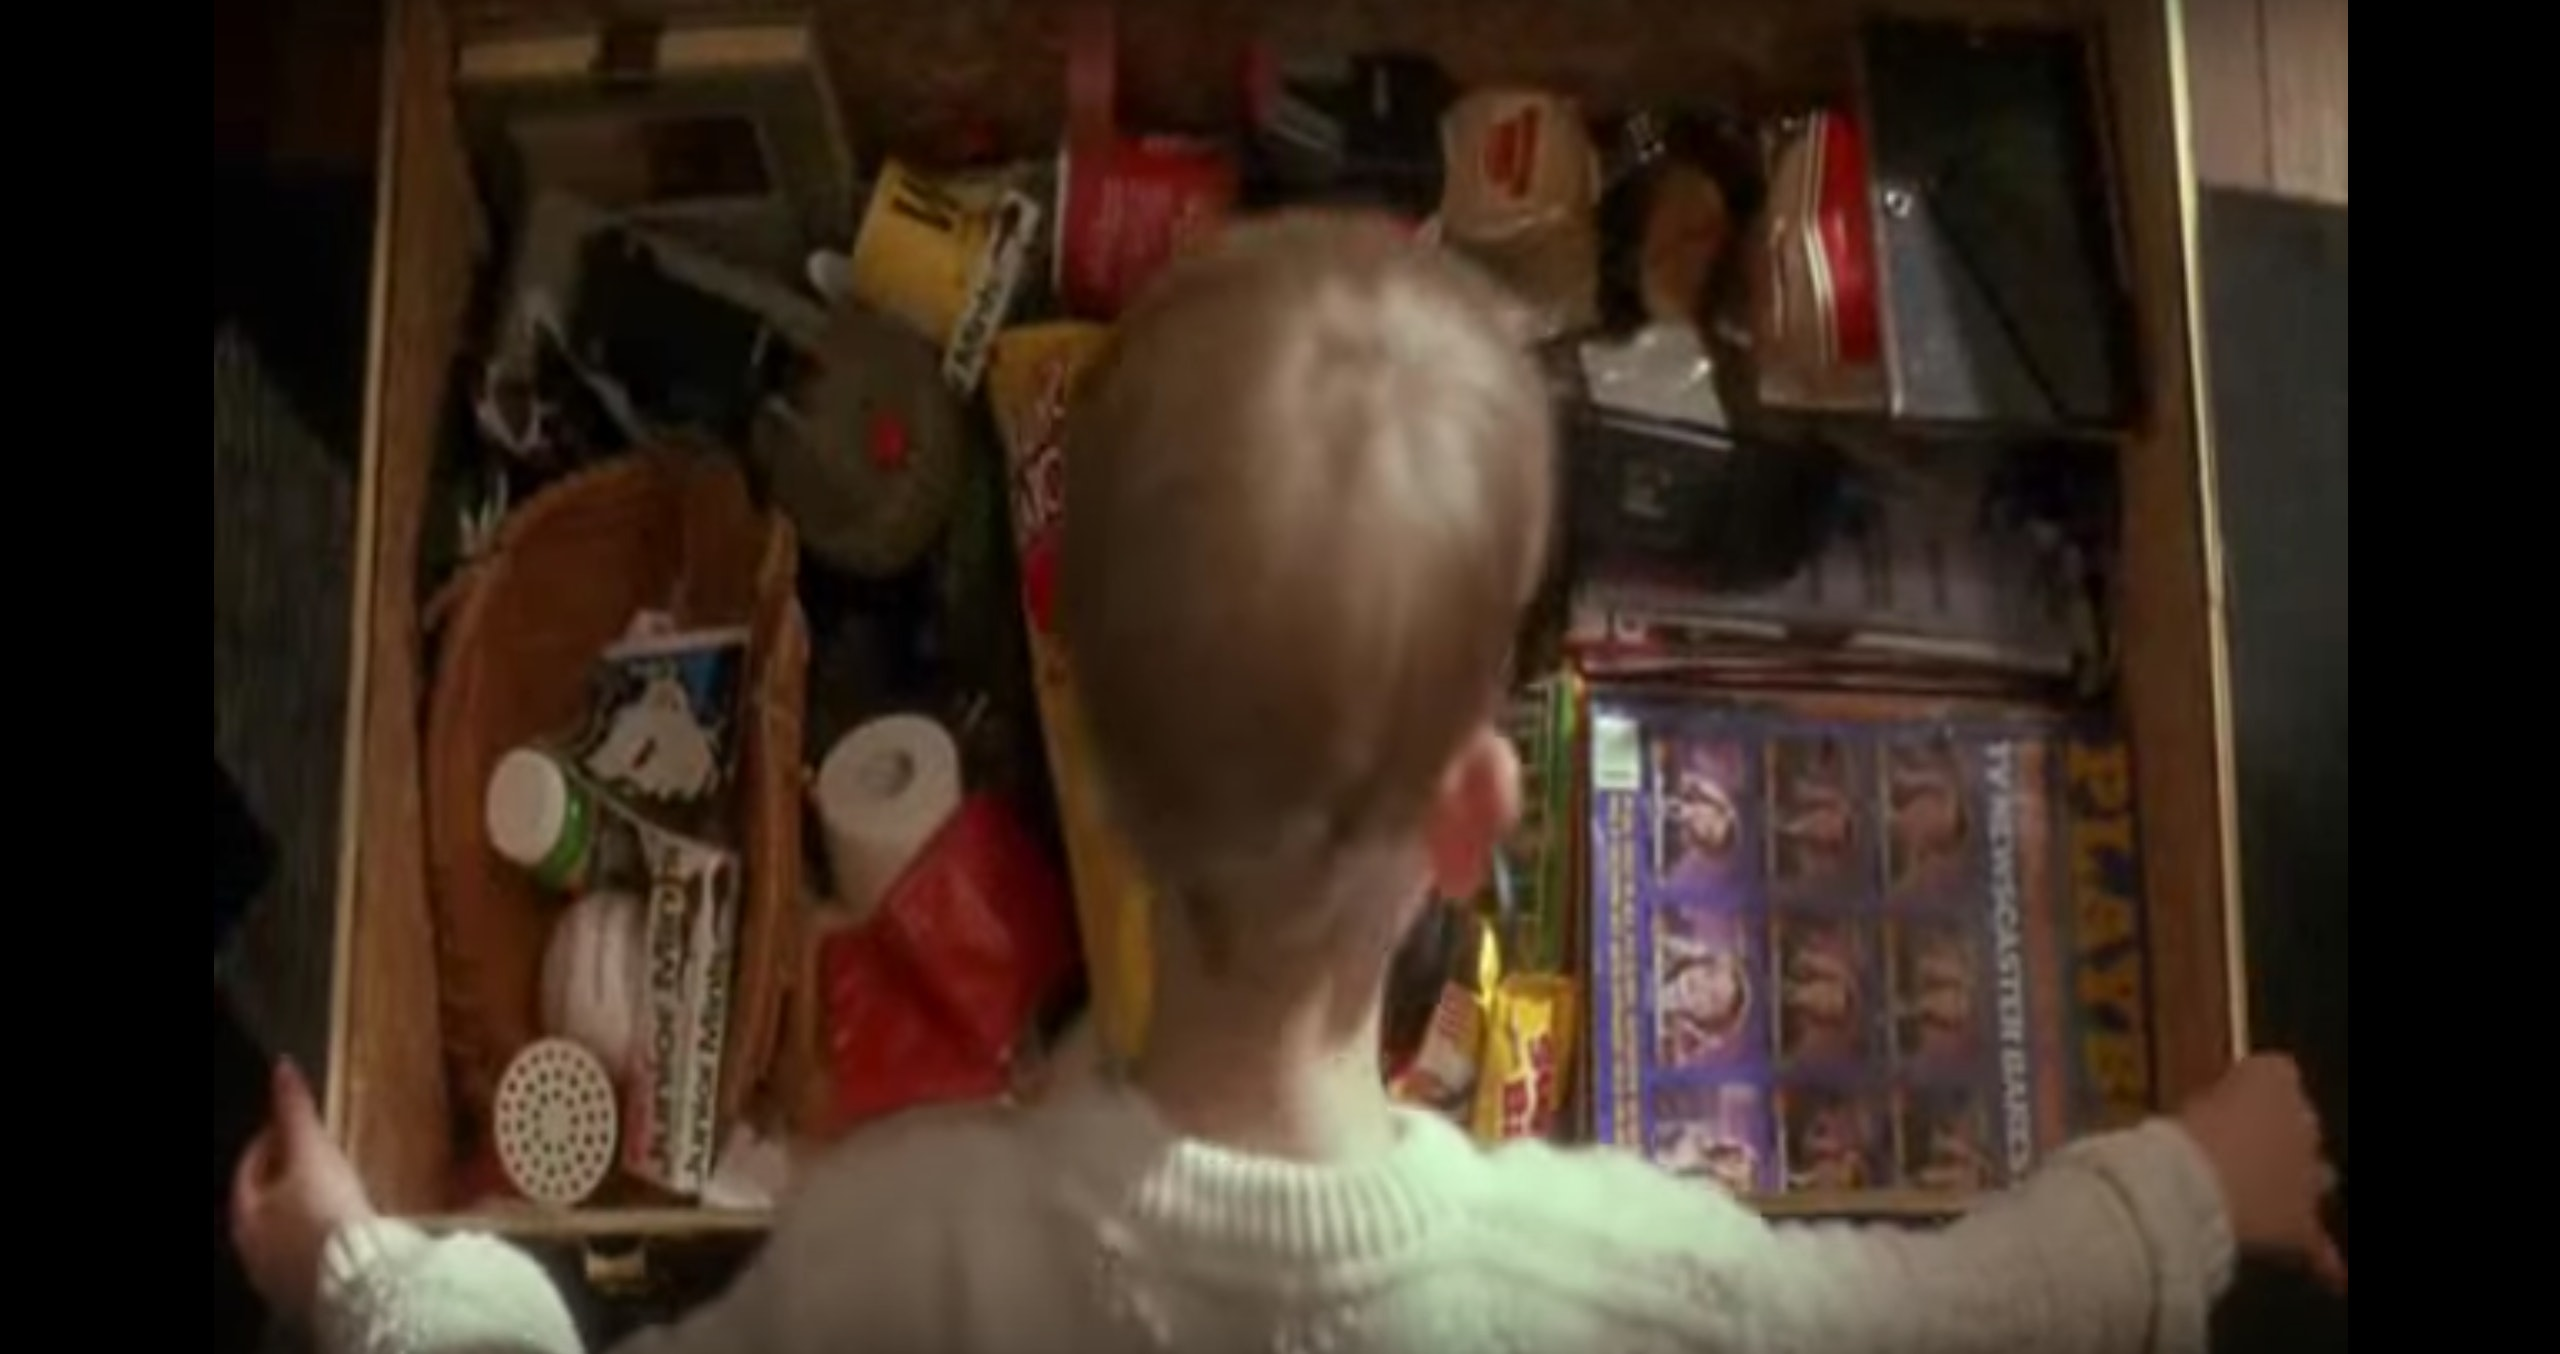 12 Things You Probably Never Noticed In Home Alone But Will